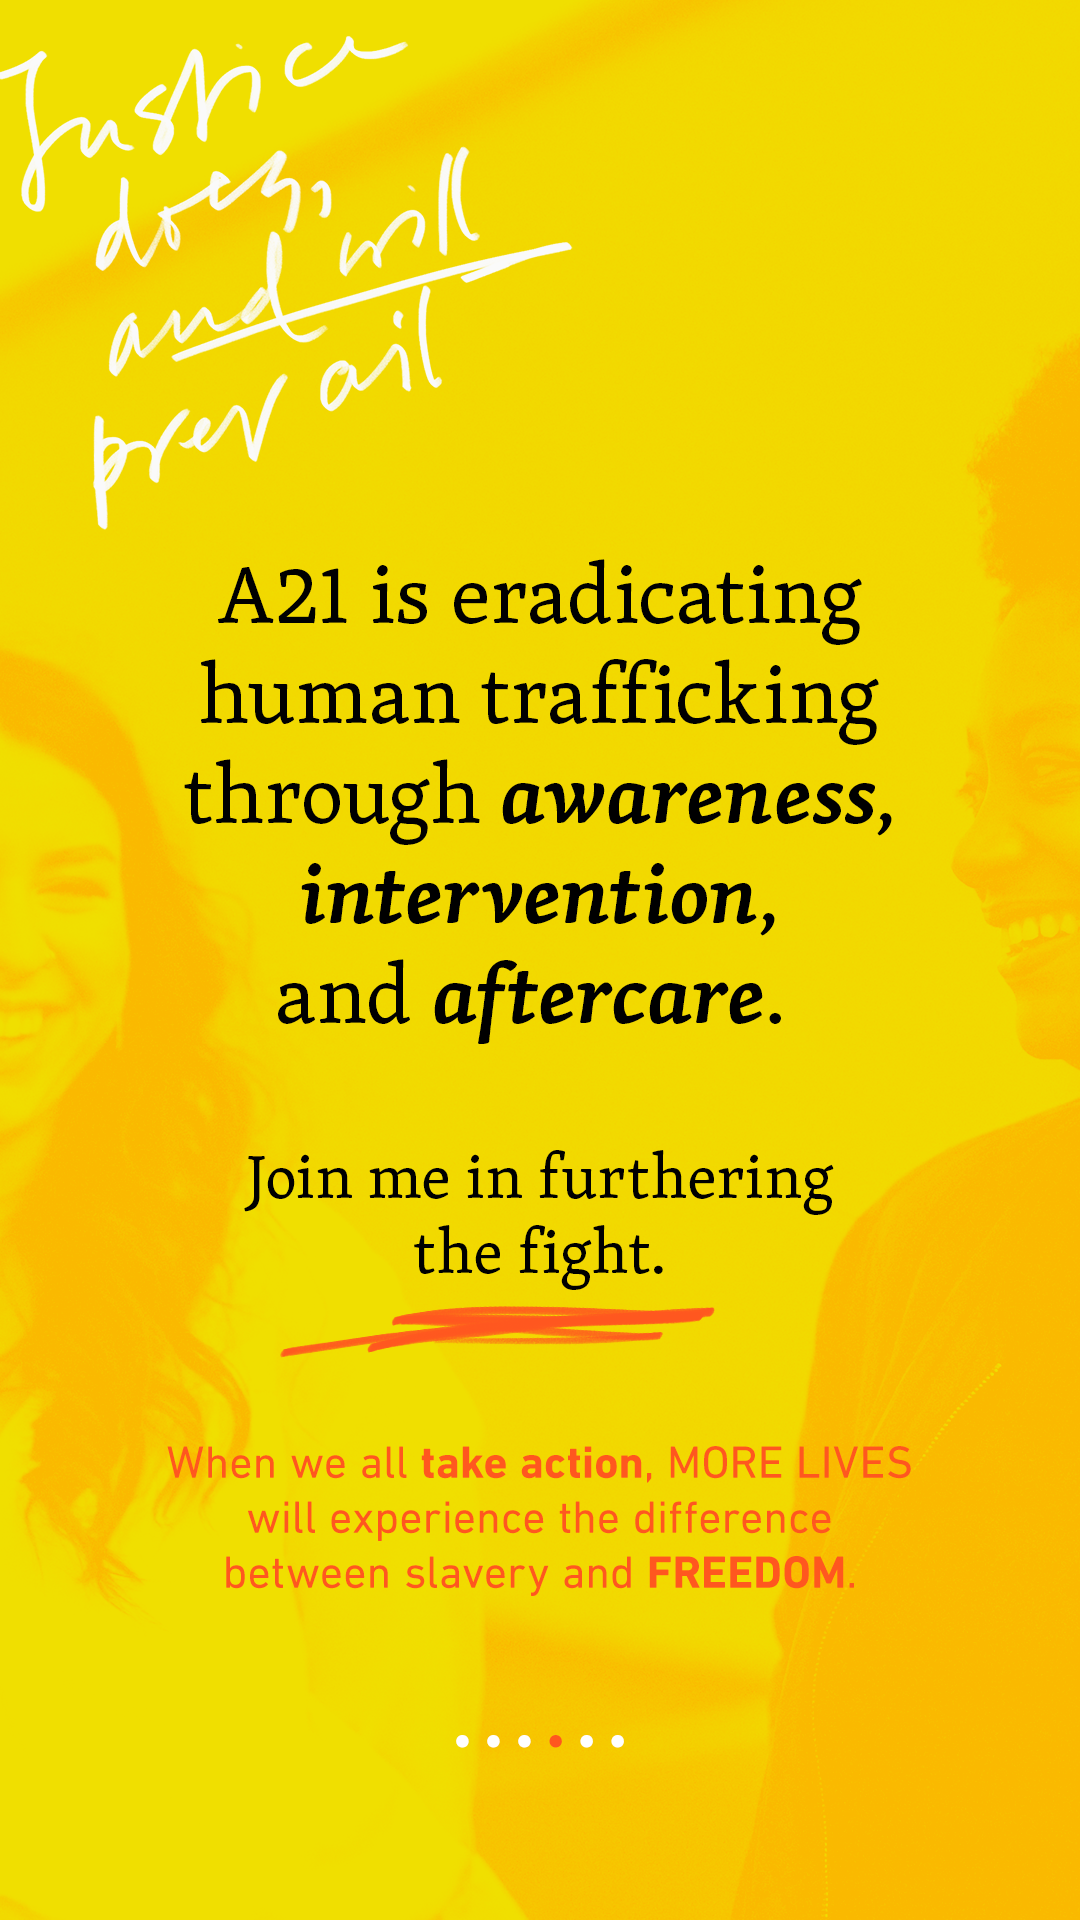 A21 is eradicating human trafficking through awareness, intervention, and aftercare. Join me in furthering the fight. When we all take action, MORE LIVES will experience the difference between slavery and FREEDOM.